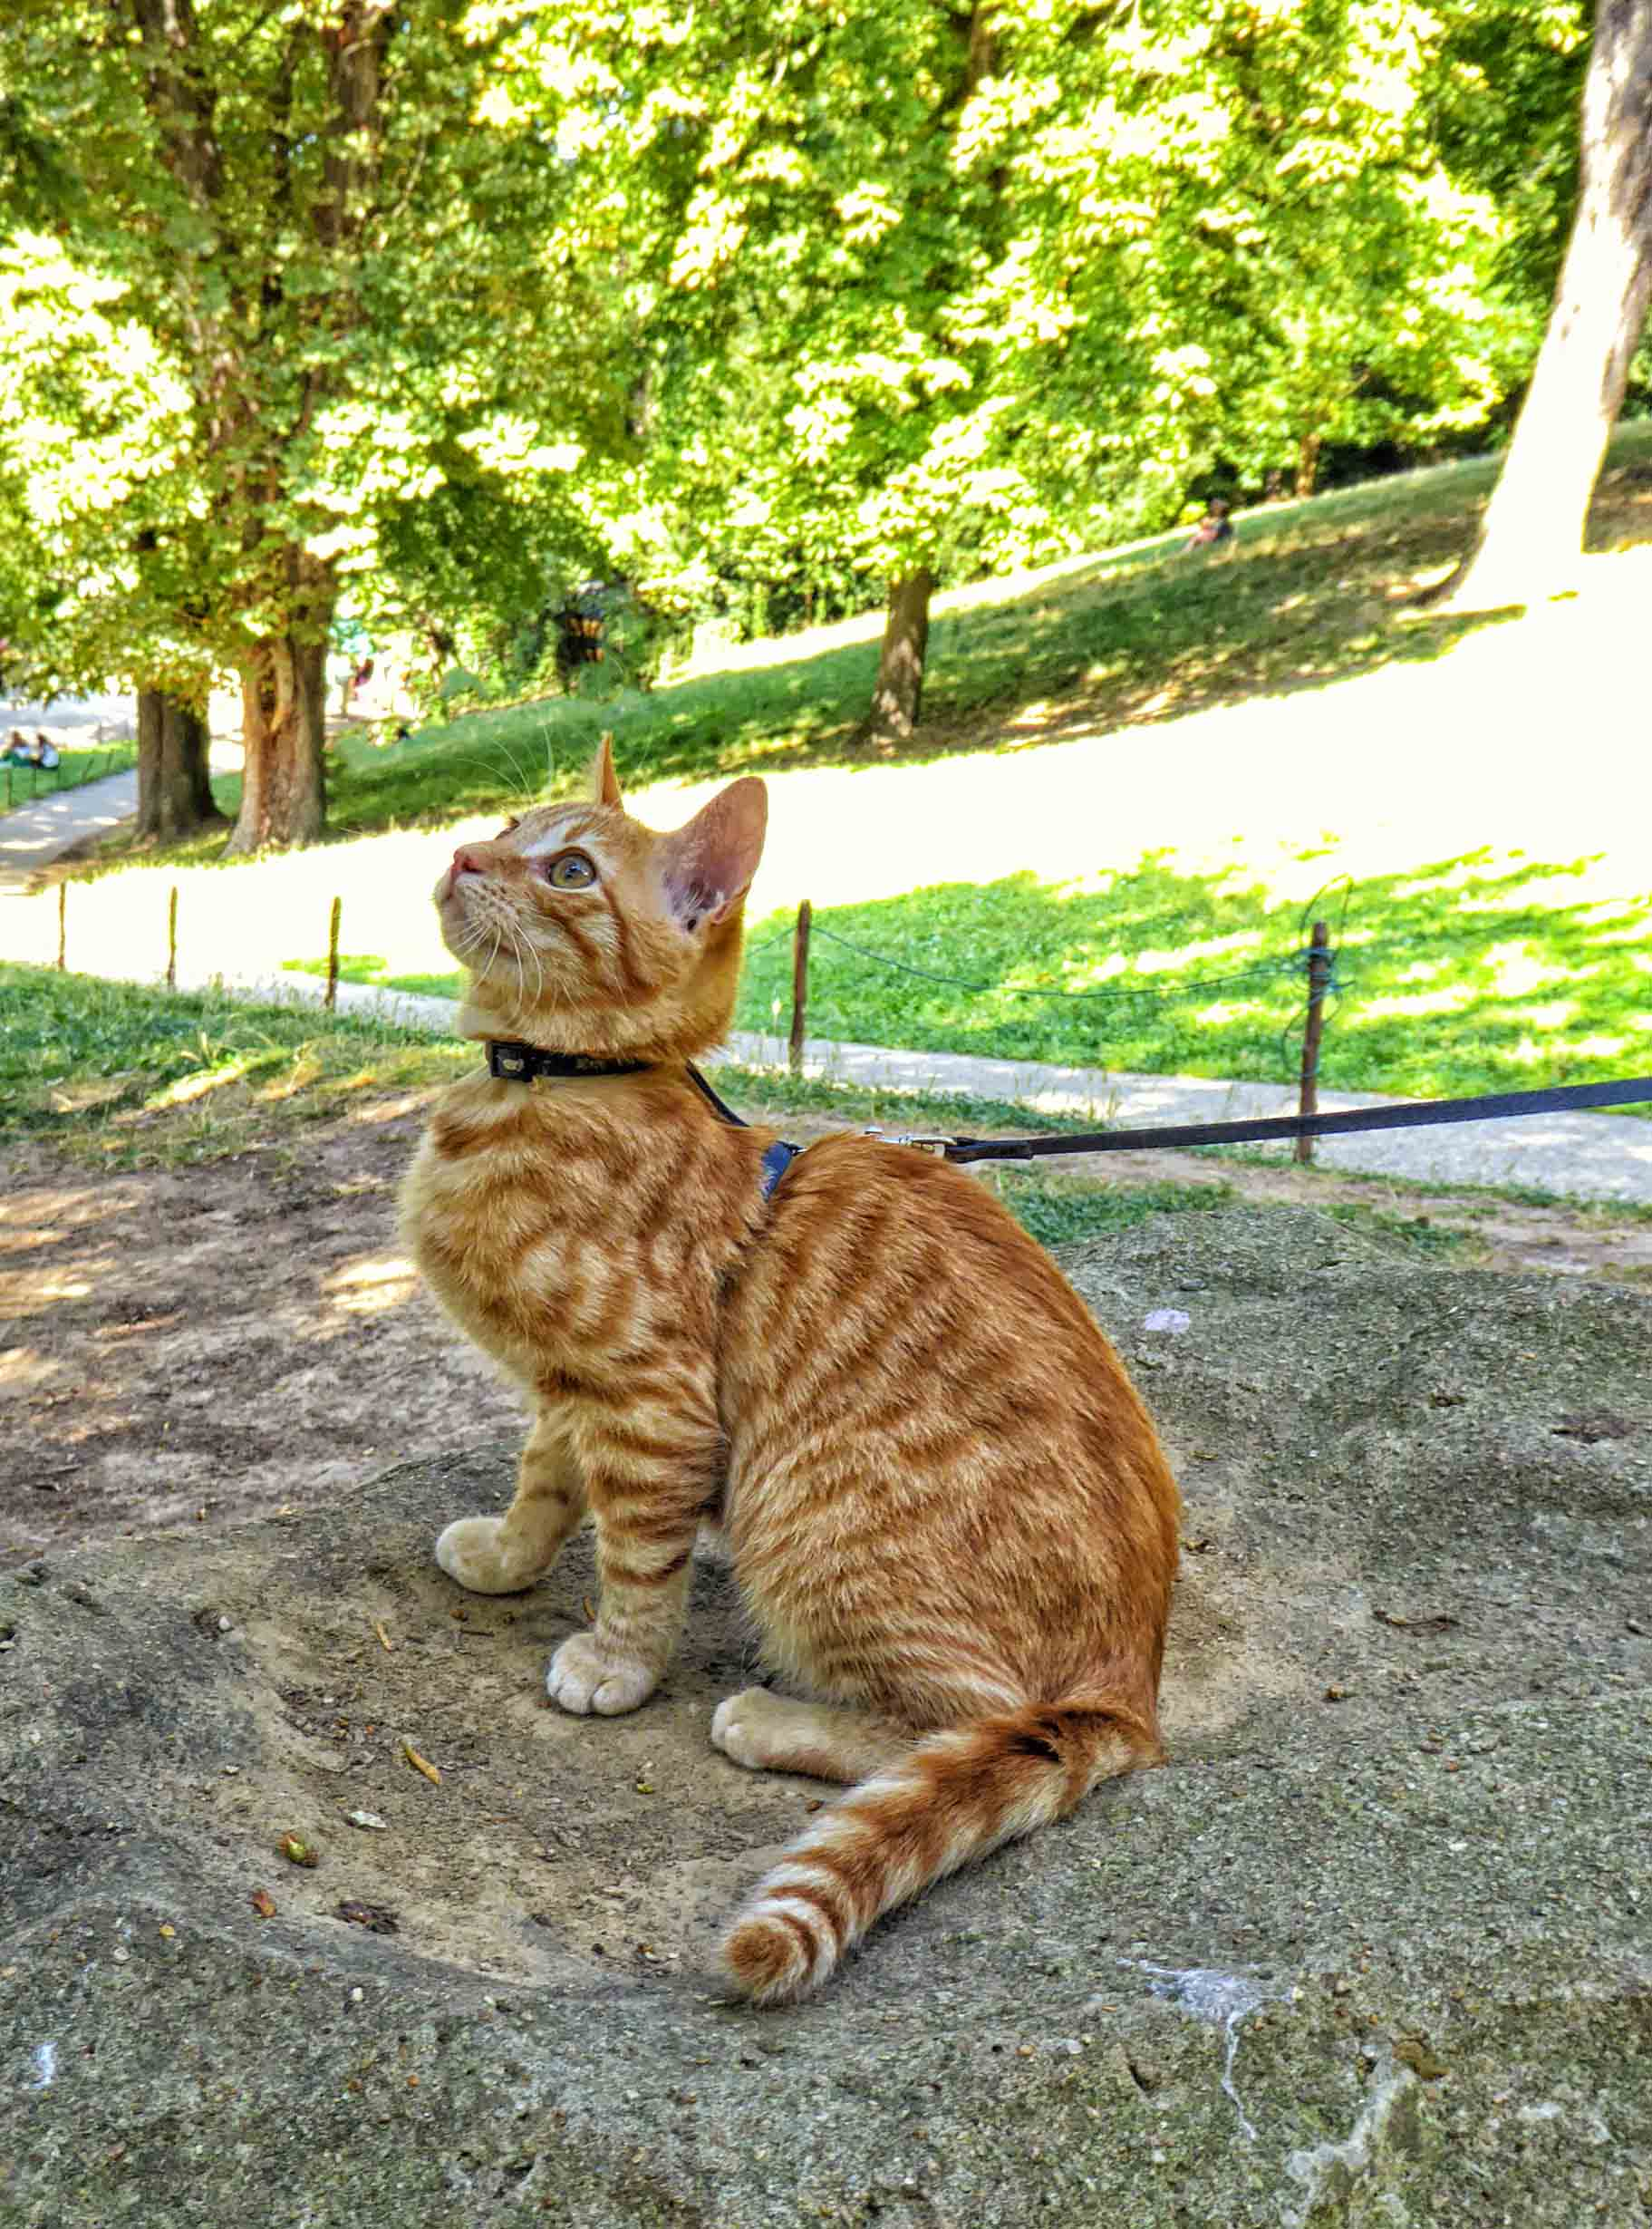 Small ginger kitten on a lead